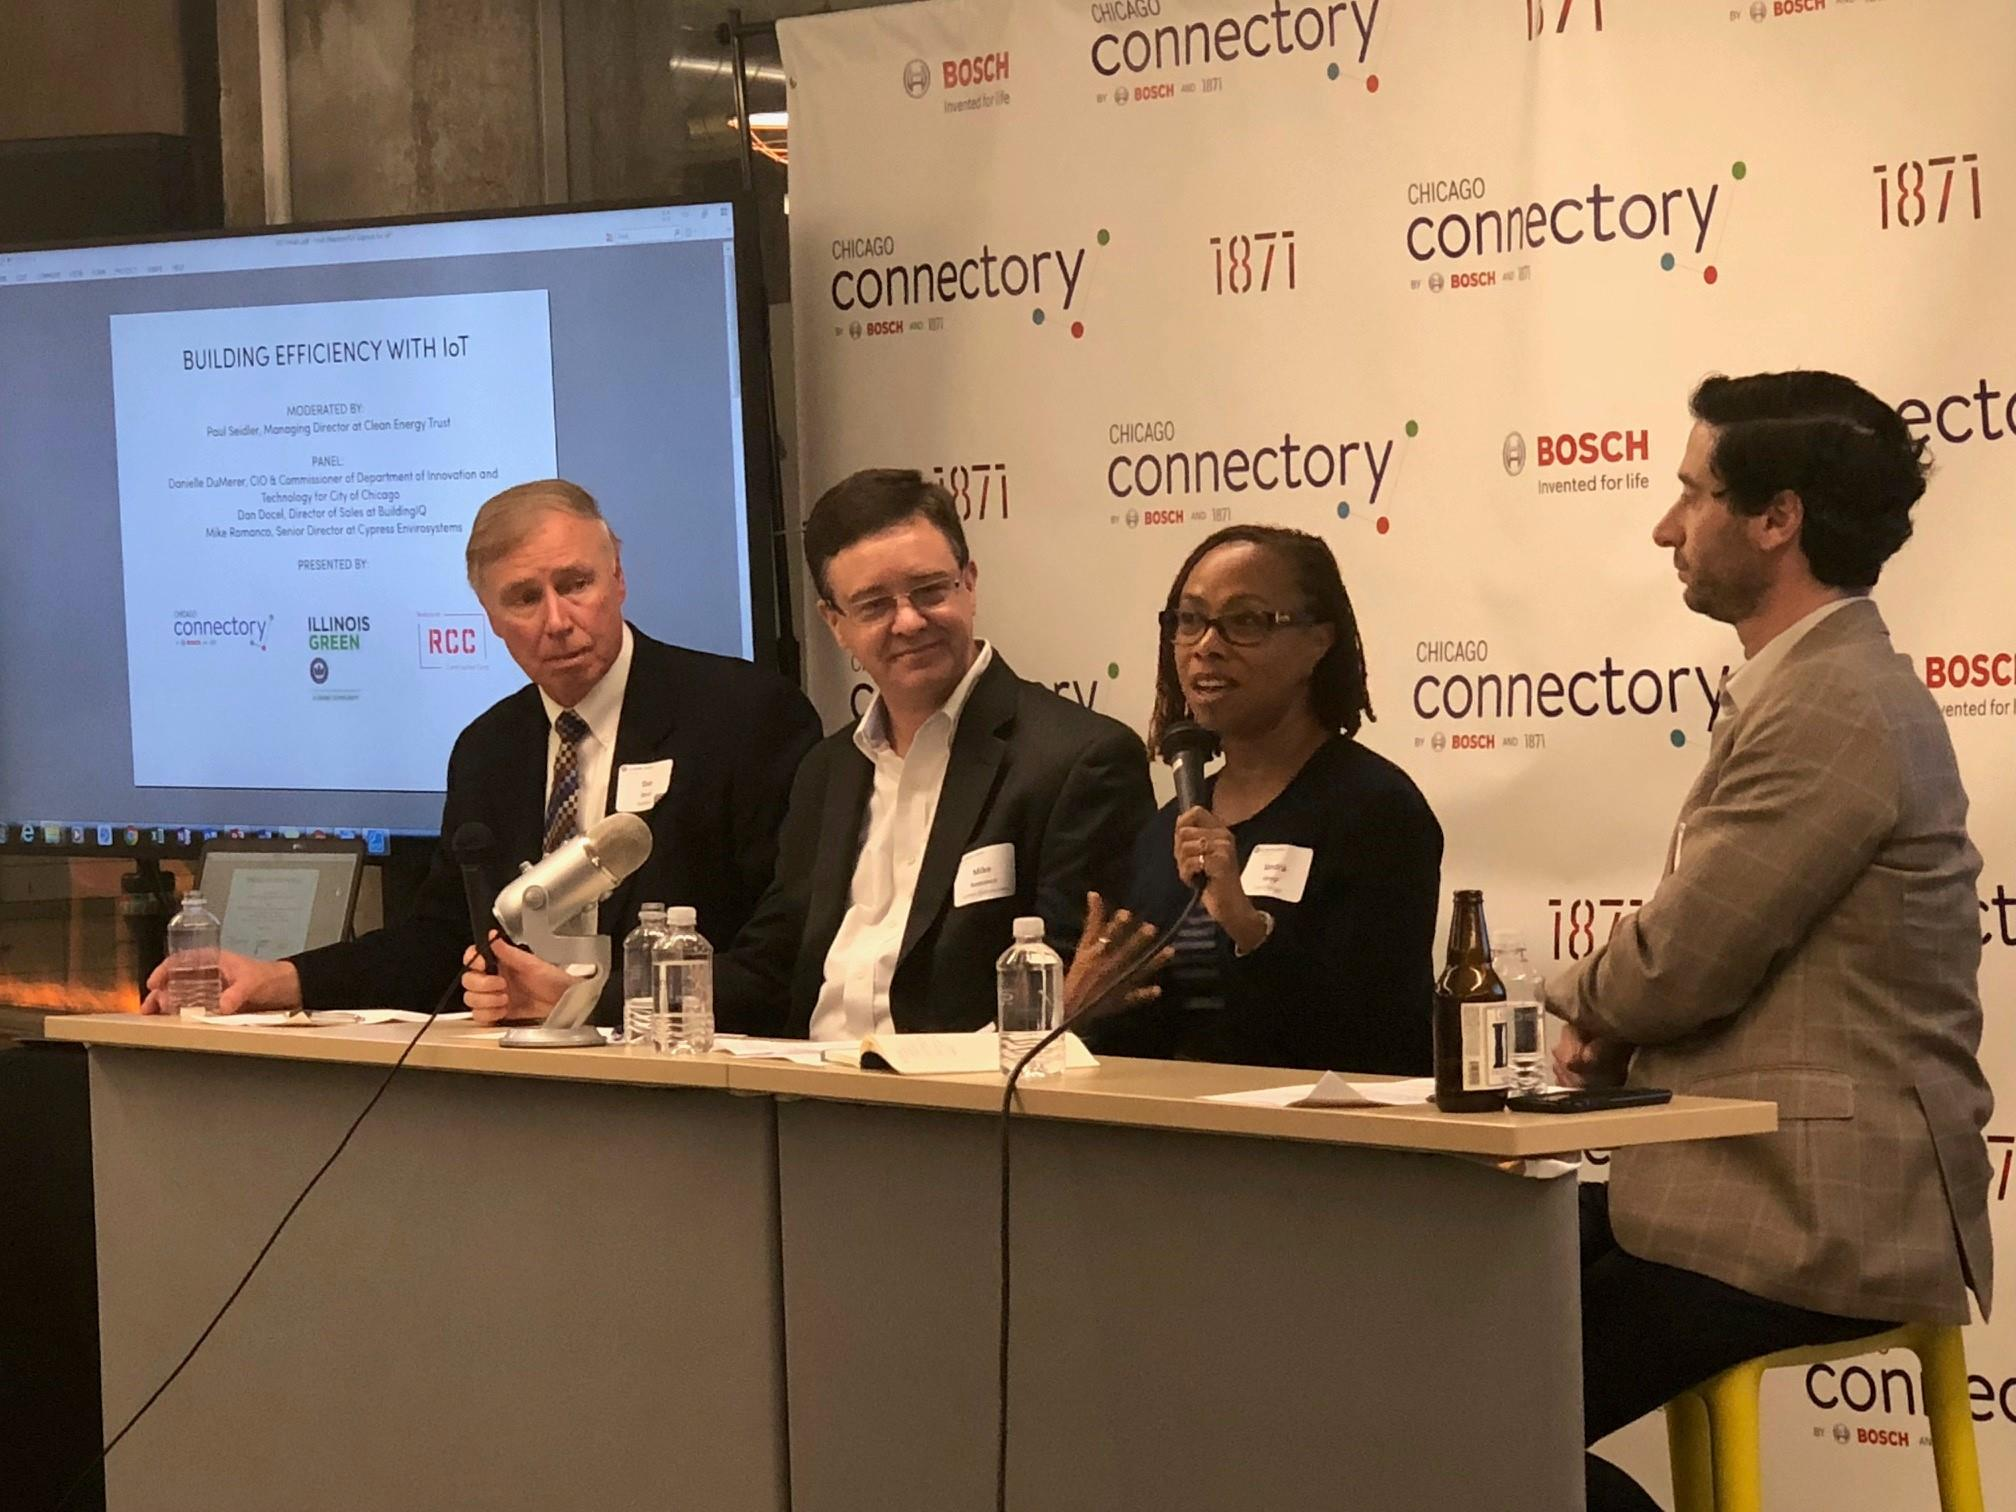 Chicago Connectory Hosts Clean Energy Trust